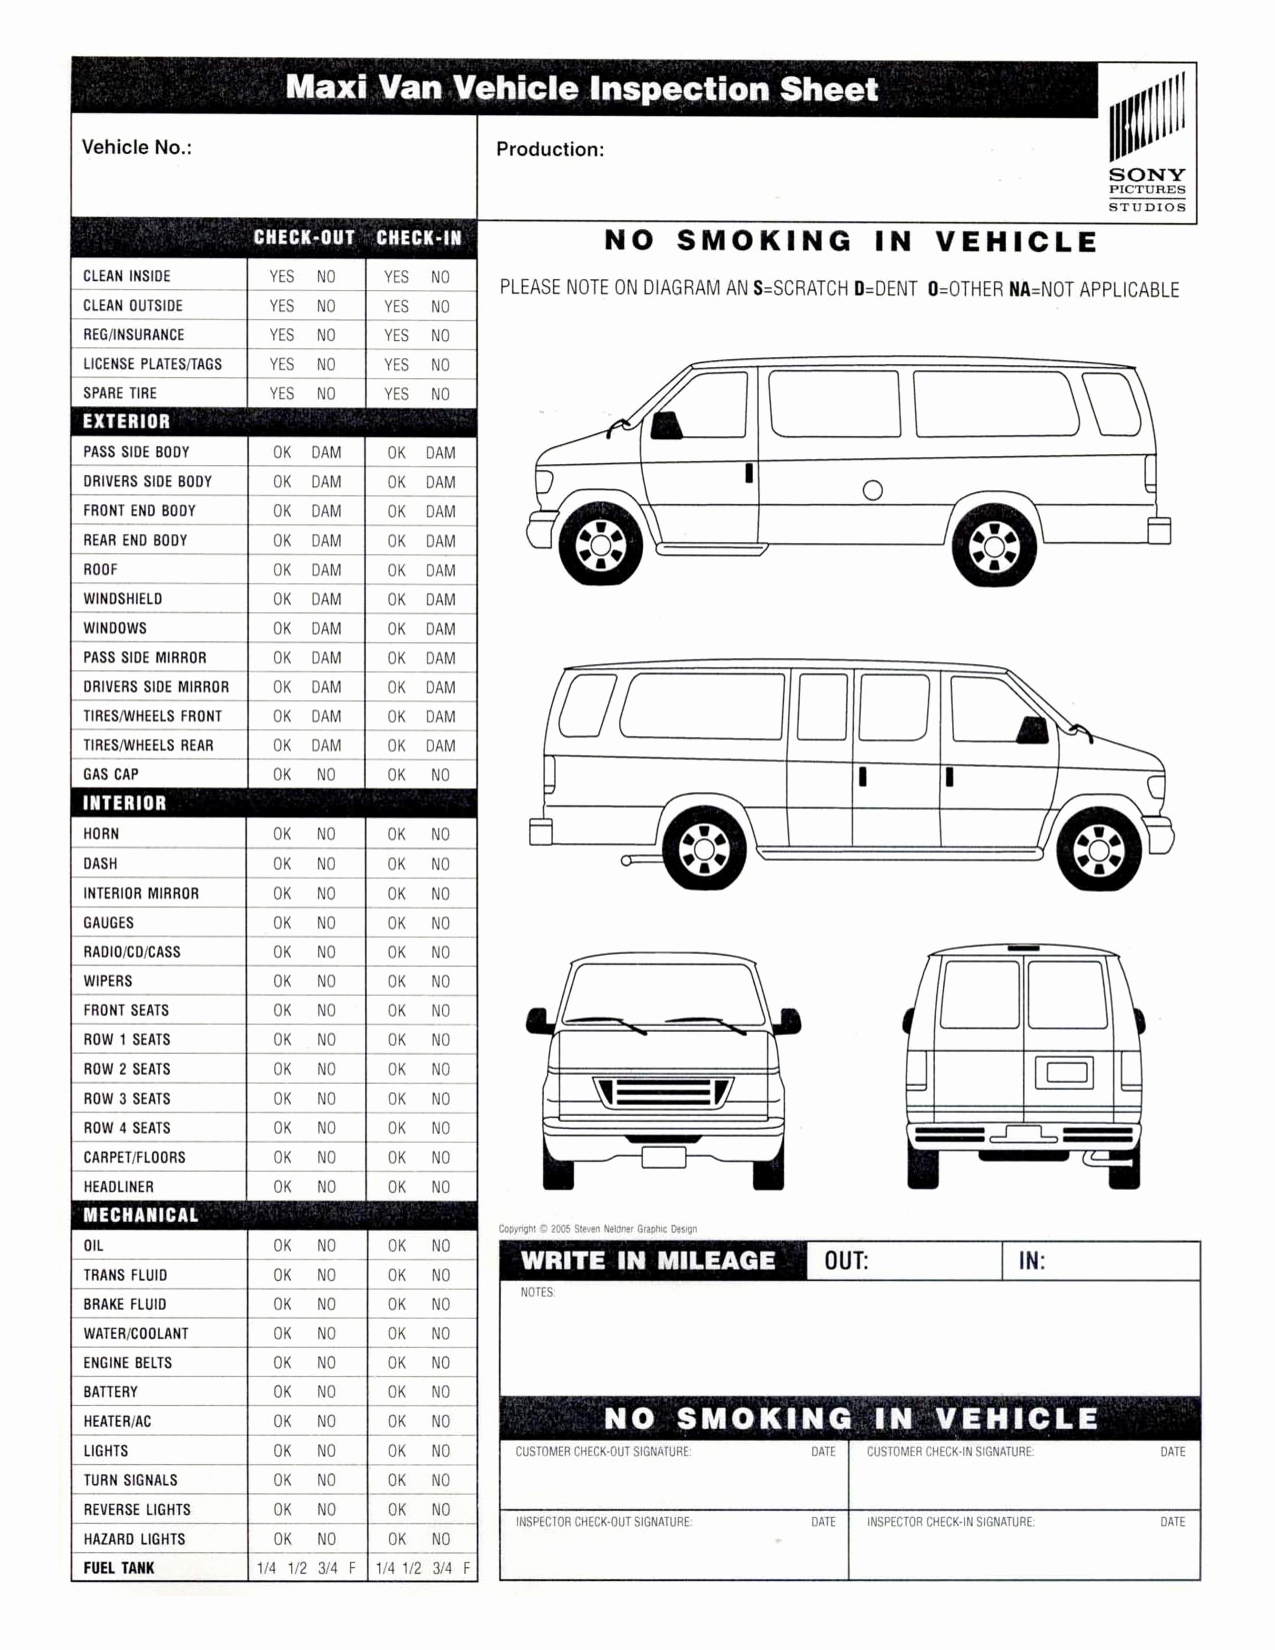 Daily Vehicle Inspection Checklist Template Elegant Vehicle Inspection Sheet Template